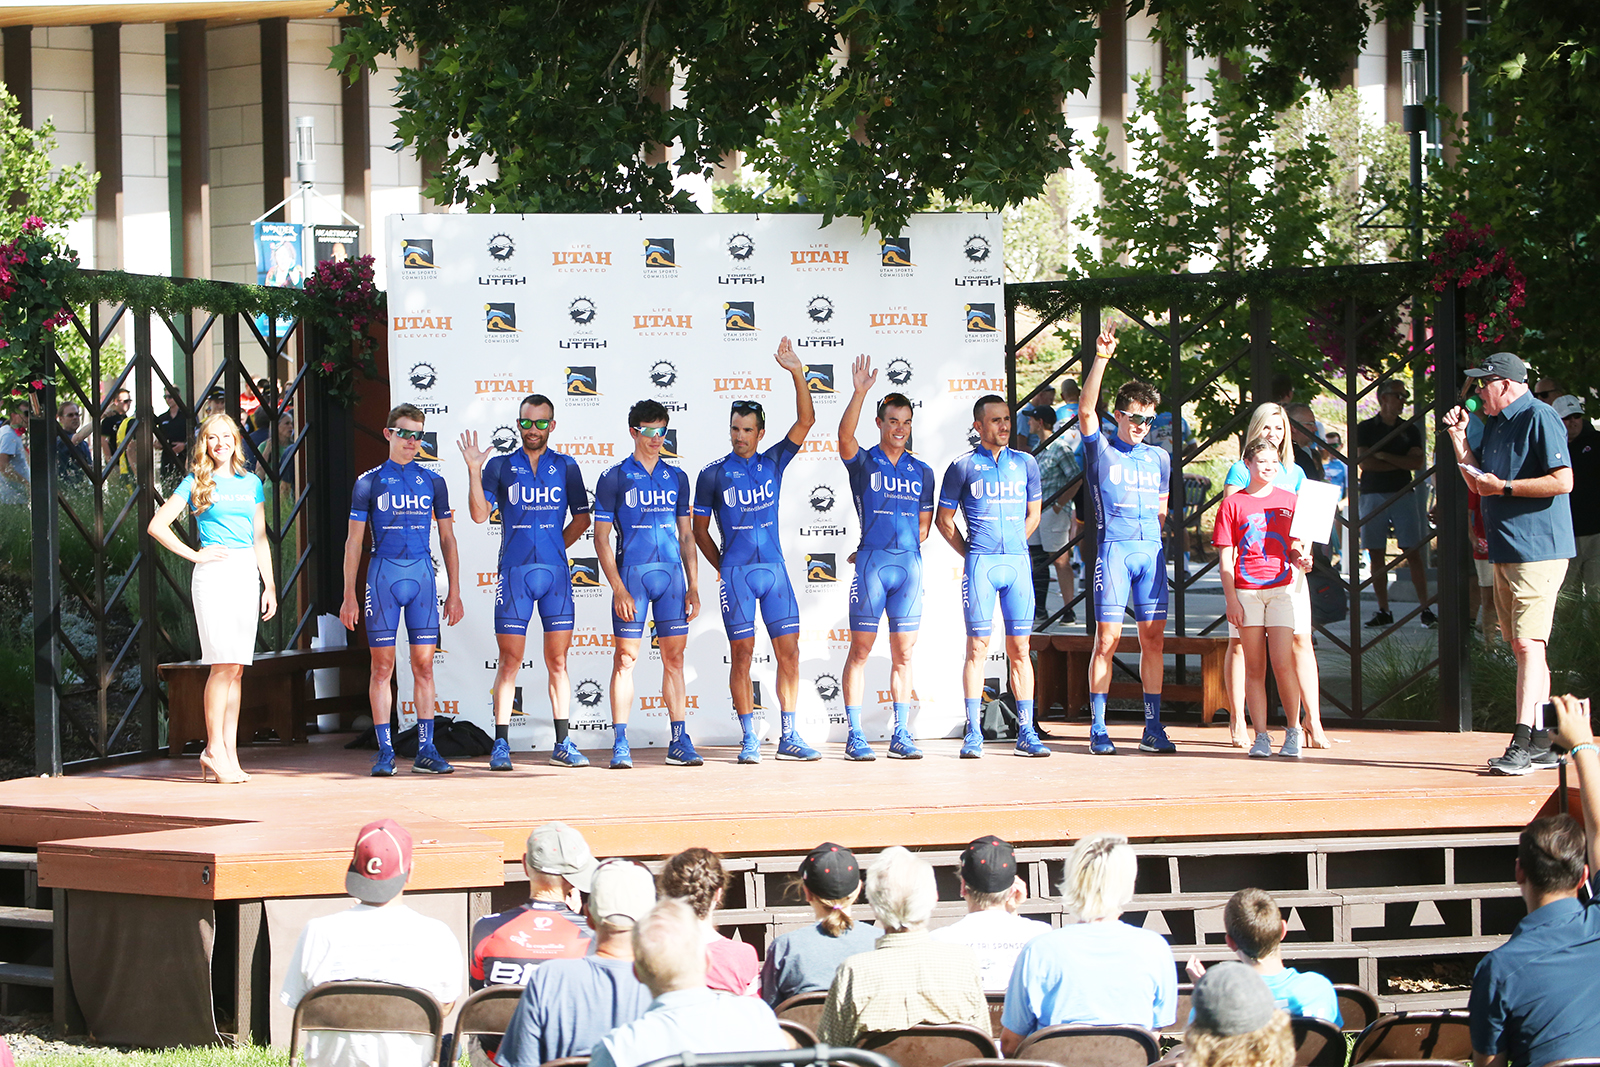 United Healthecare Professional Cycling Team. 2018 Tour of Utah Team Presentation, August 4, 2018, Cedar City, Utah. Photo by Cathy Fegan-Kim, cottonsoxphotography.net